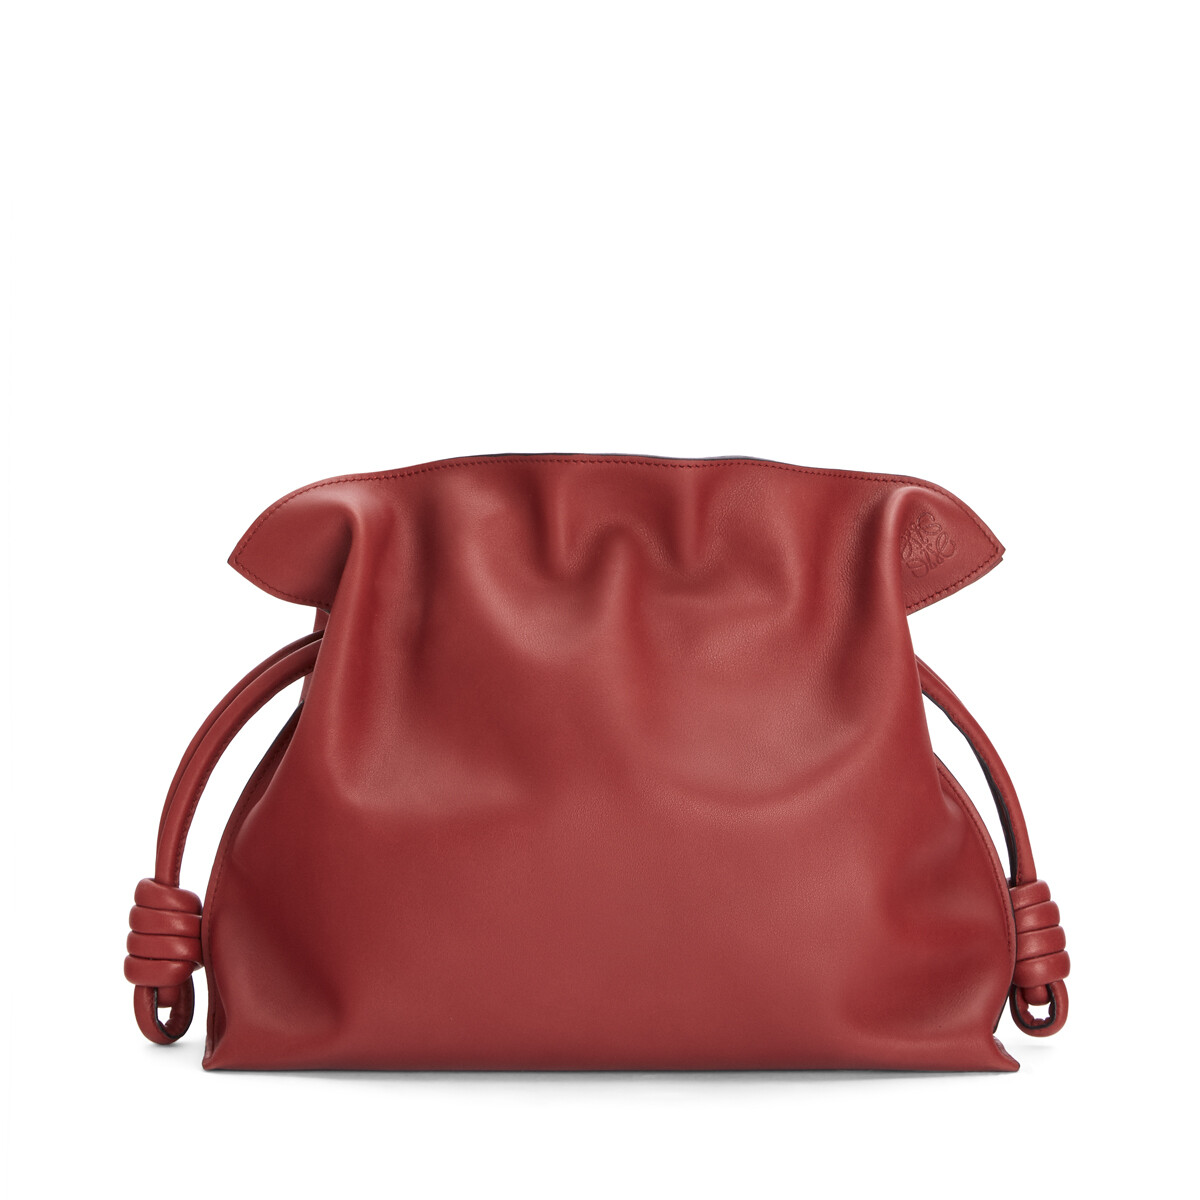 LOEWE FLAMENCO 手拿包 Burnt Red front